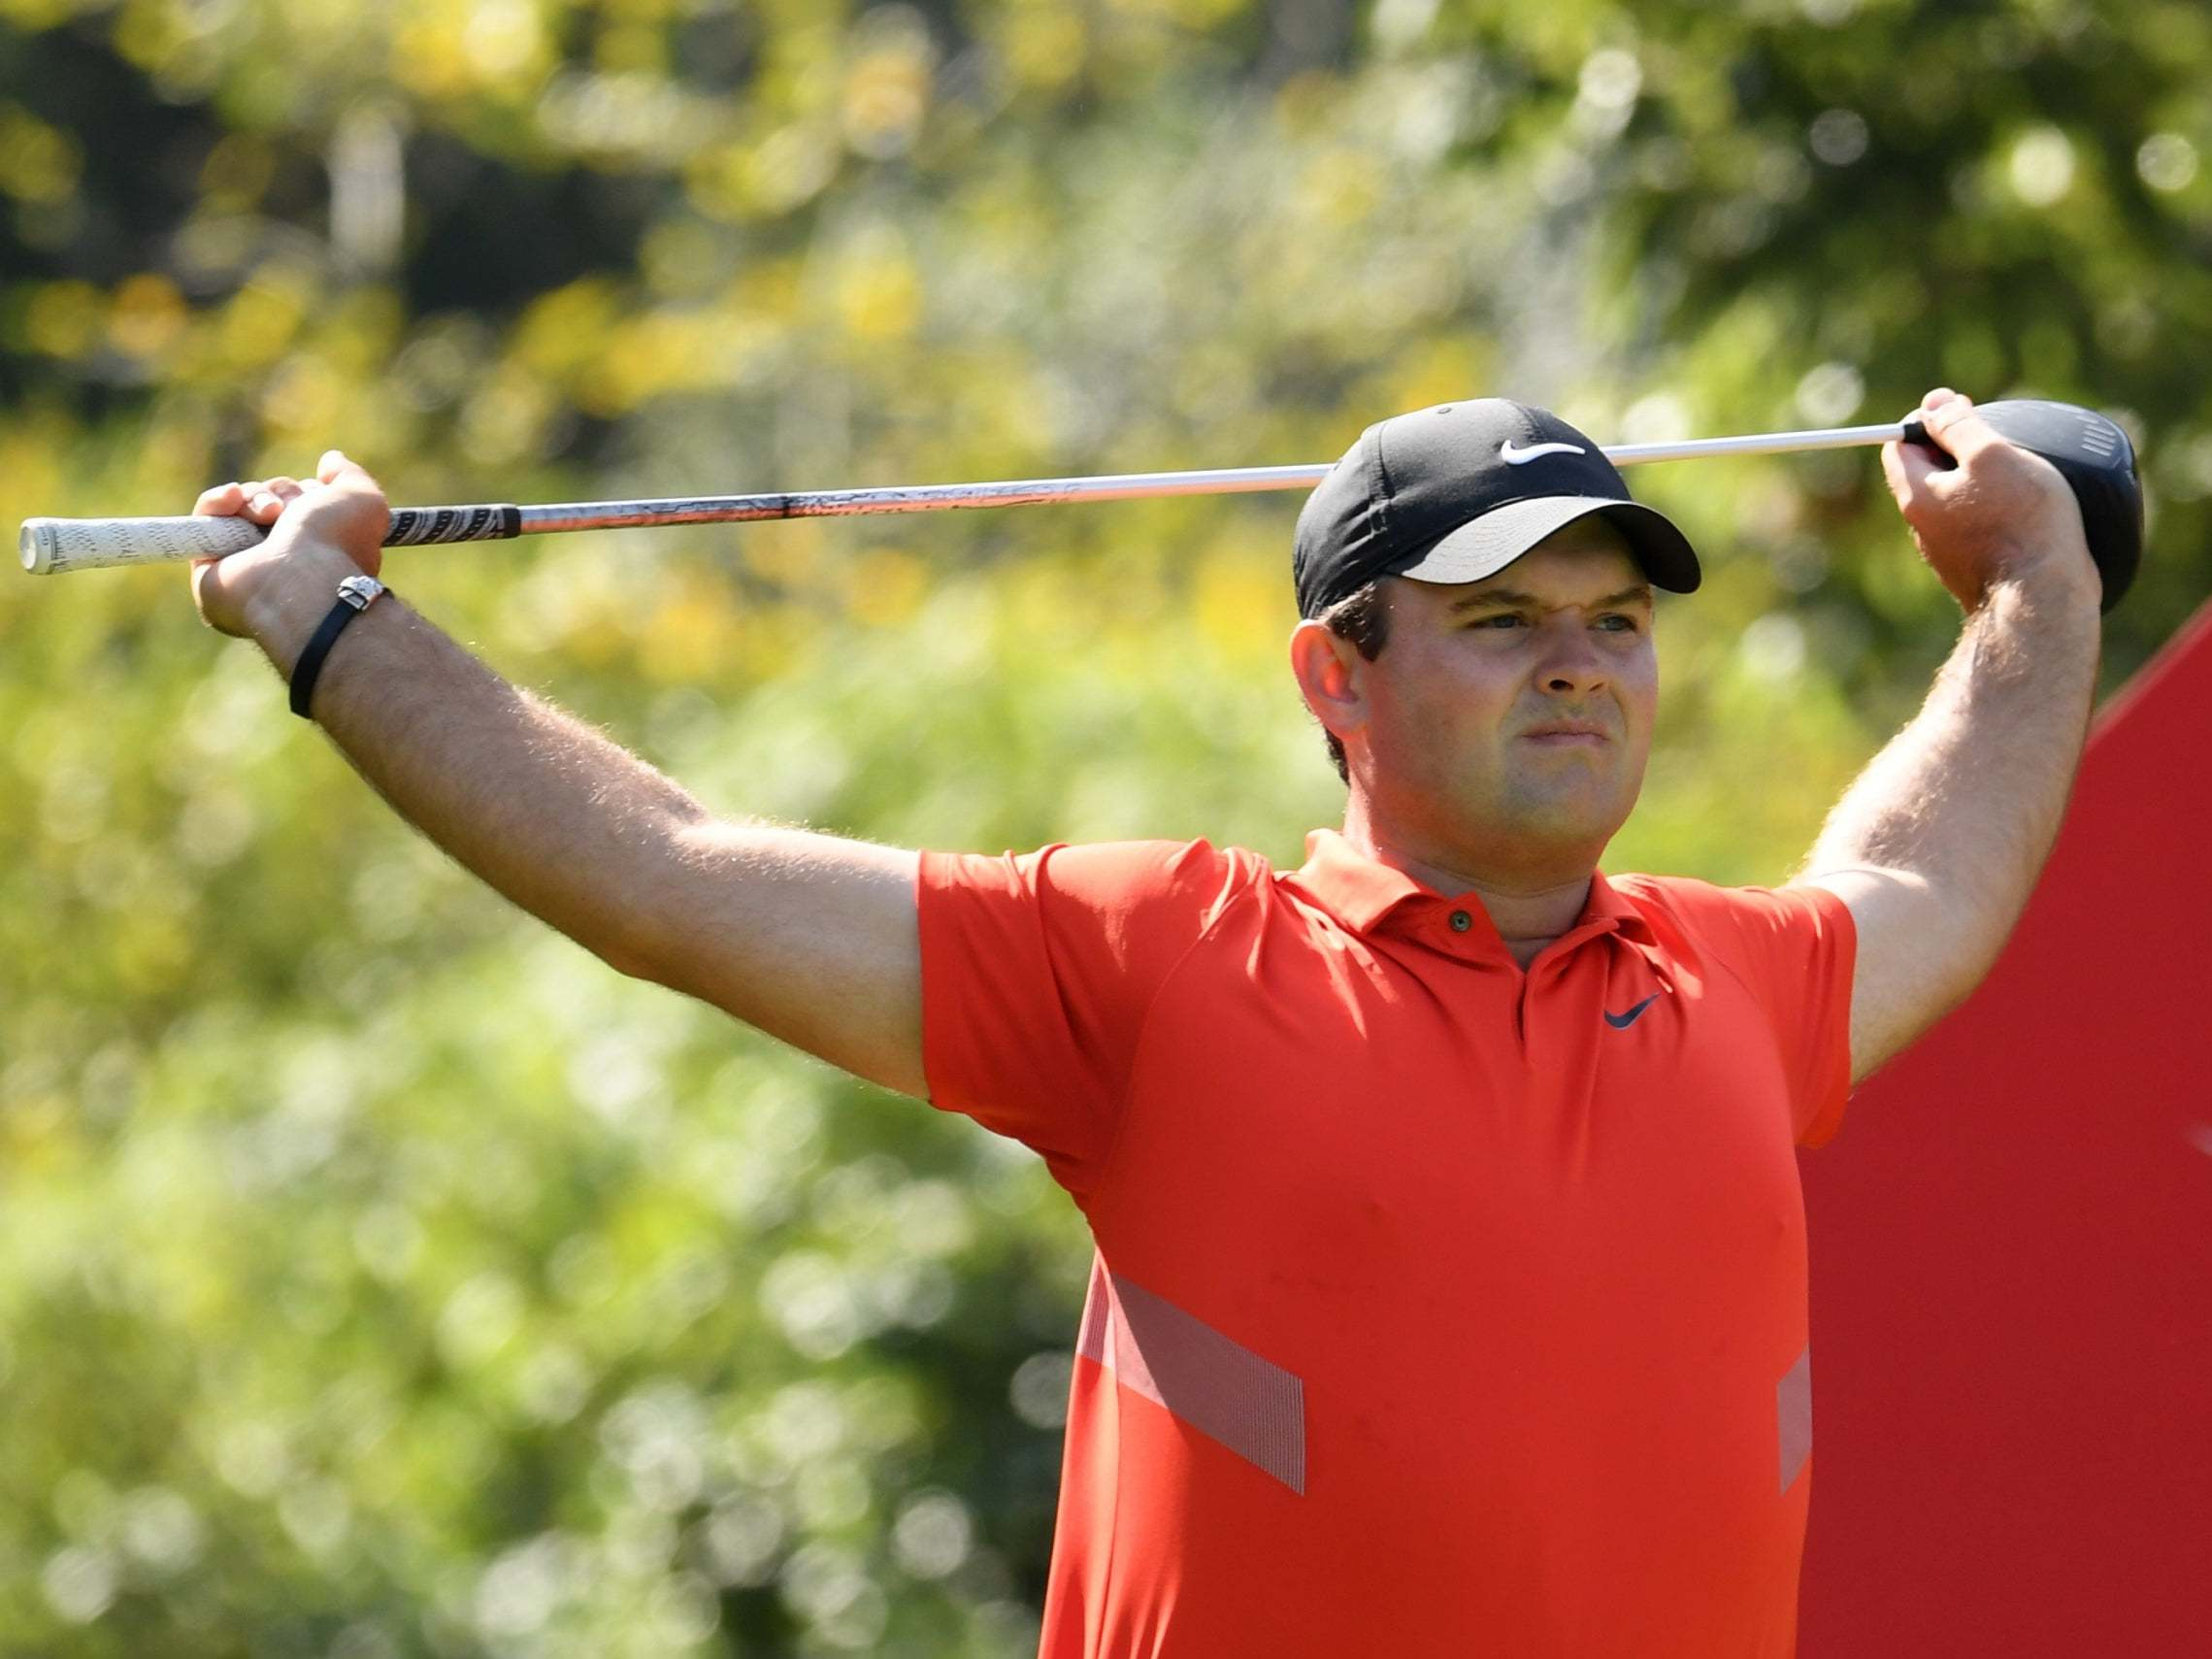 Patrick Reed riding high after Tiger Woods backing and lays down challenge to troubled Jordan Spieth